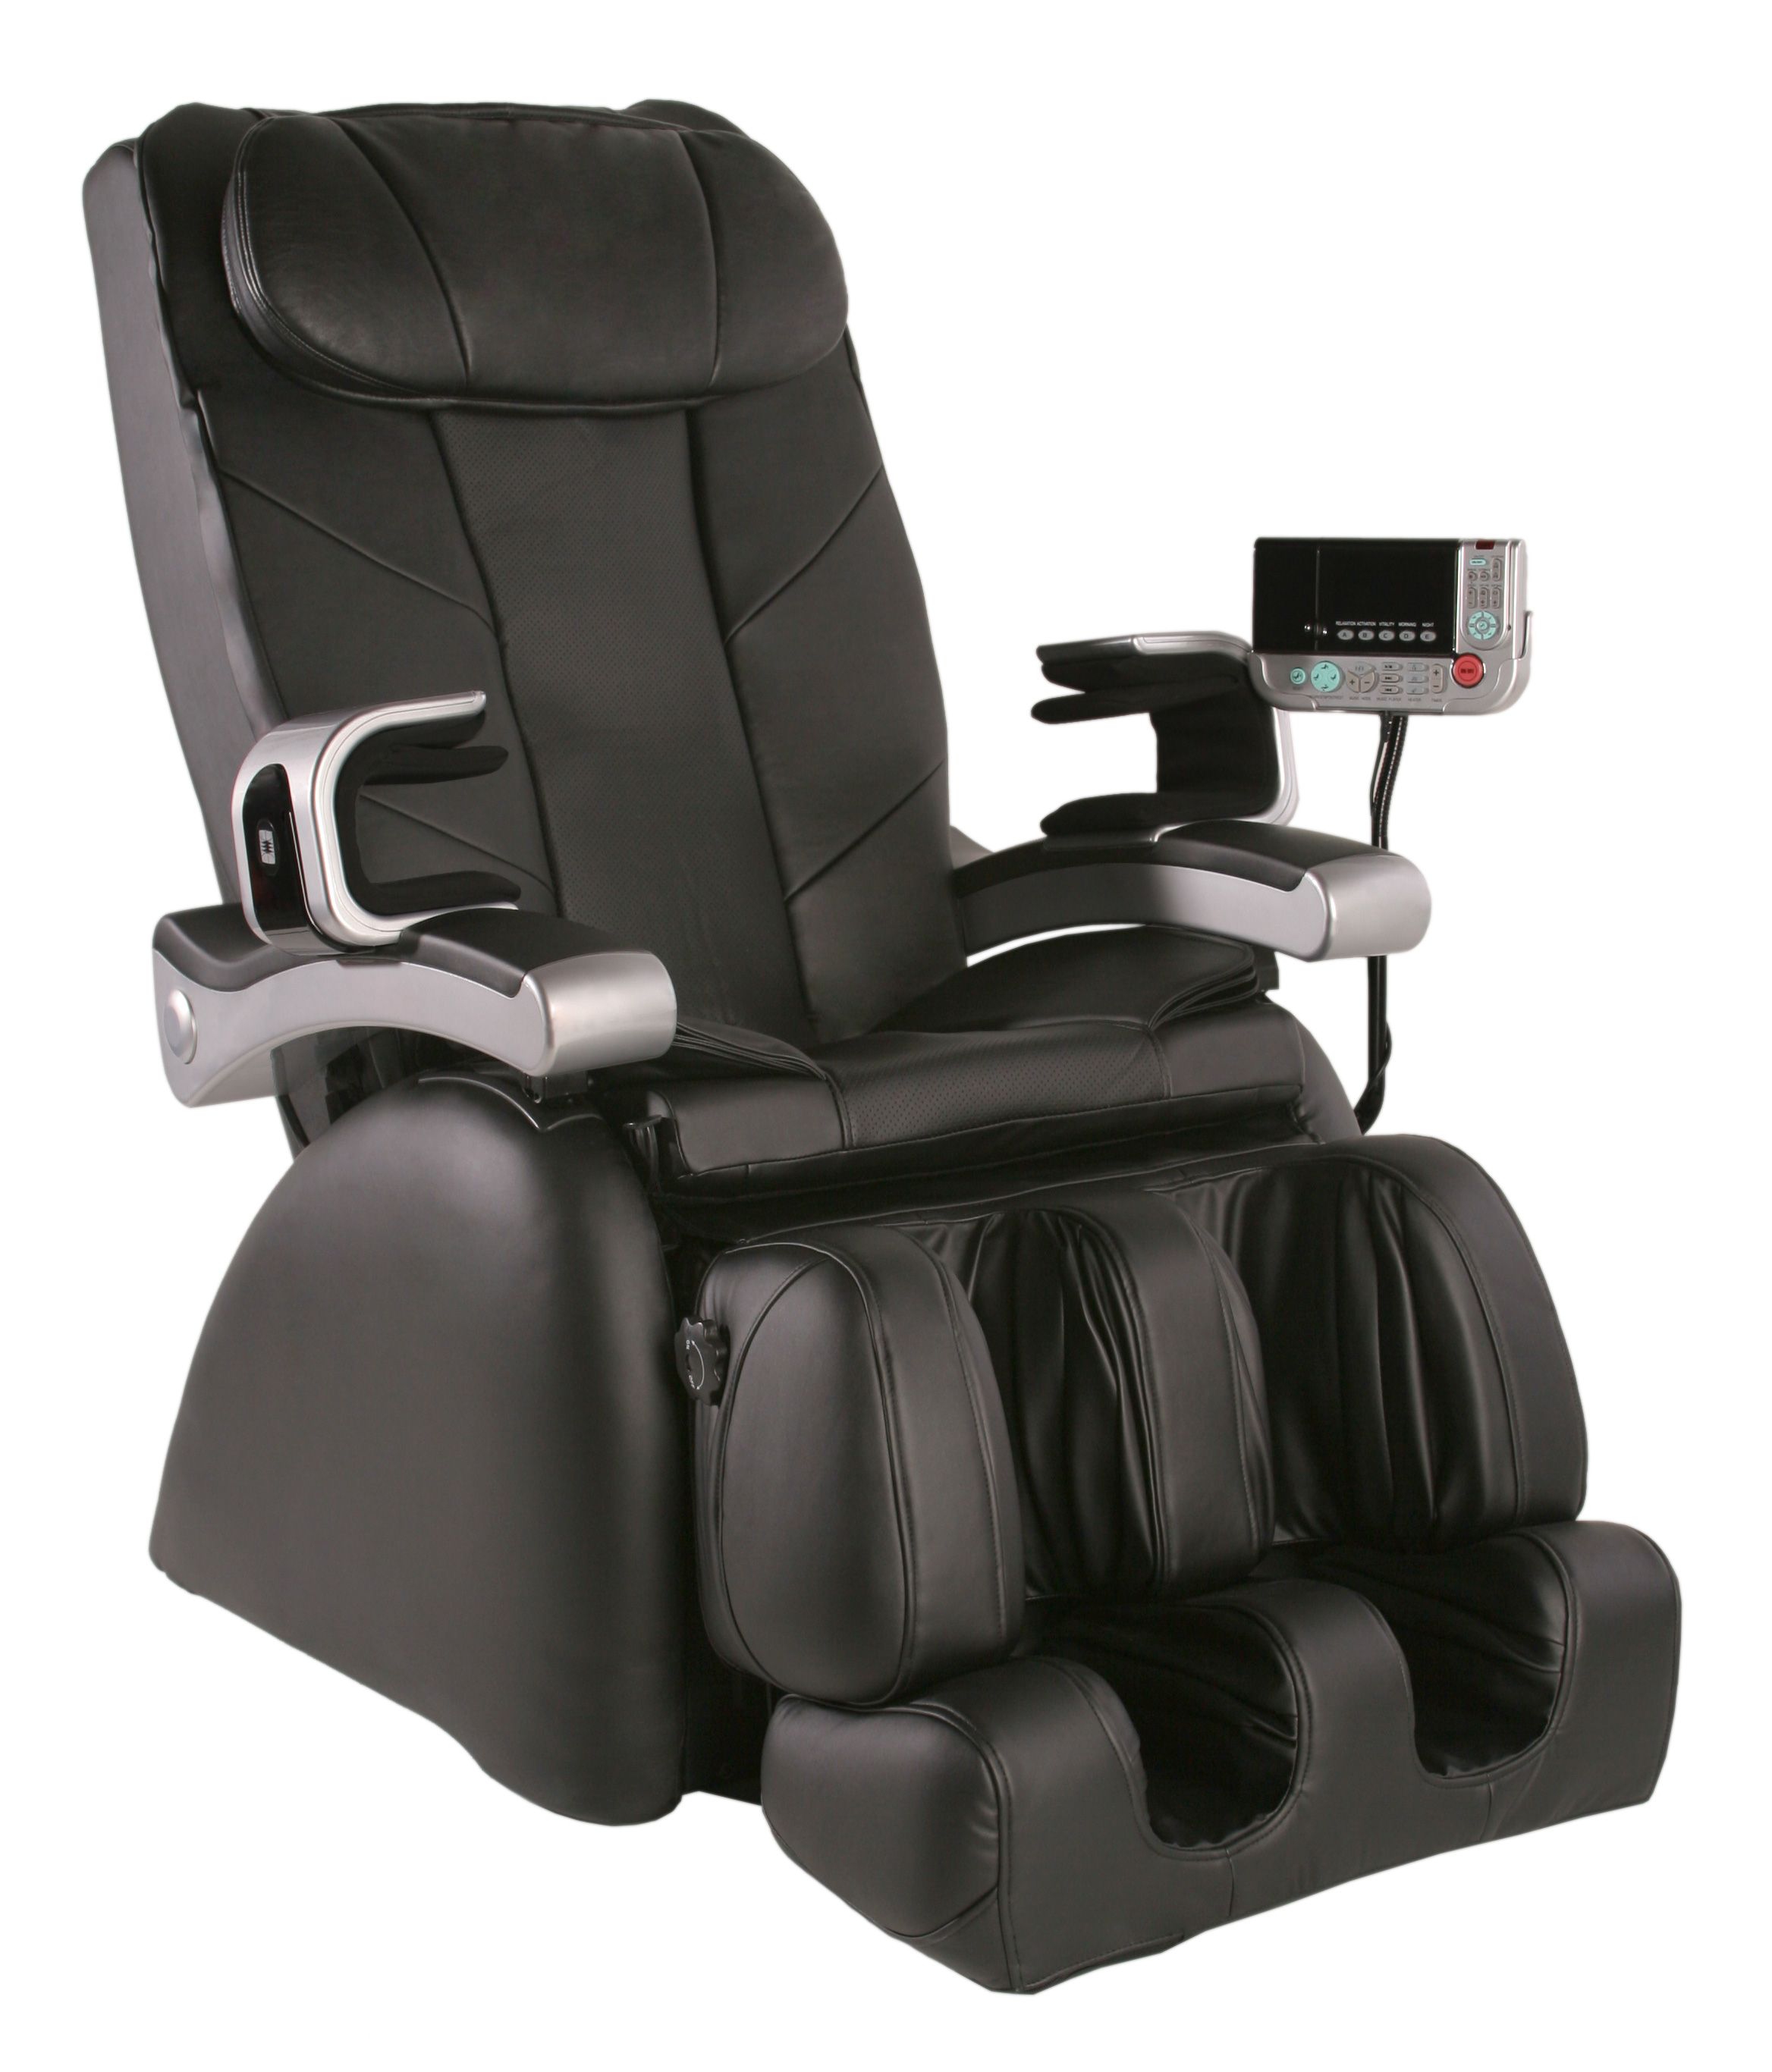 Image of: Recliner Massage Chair for Office